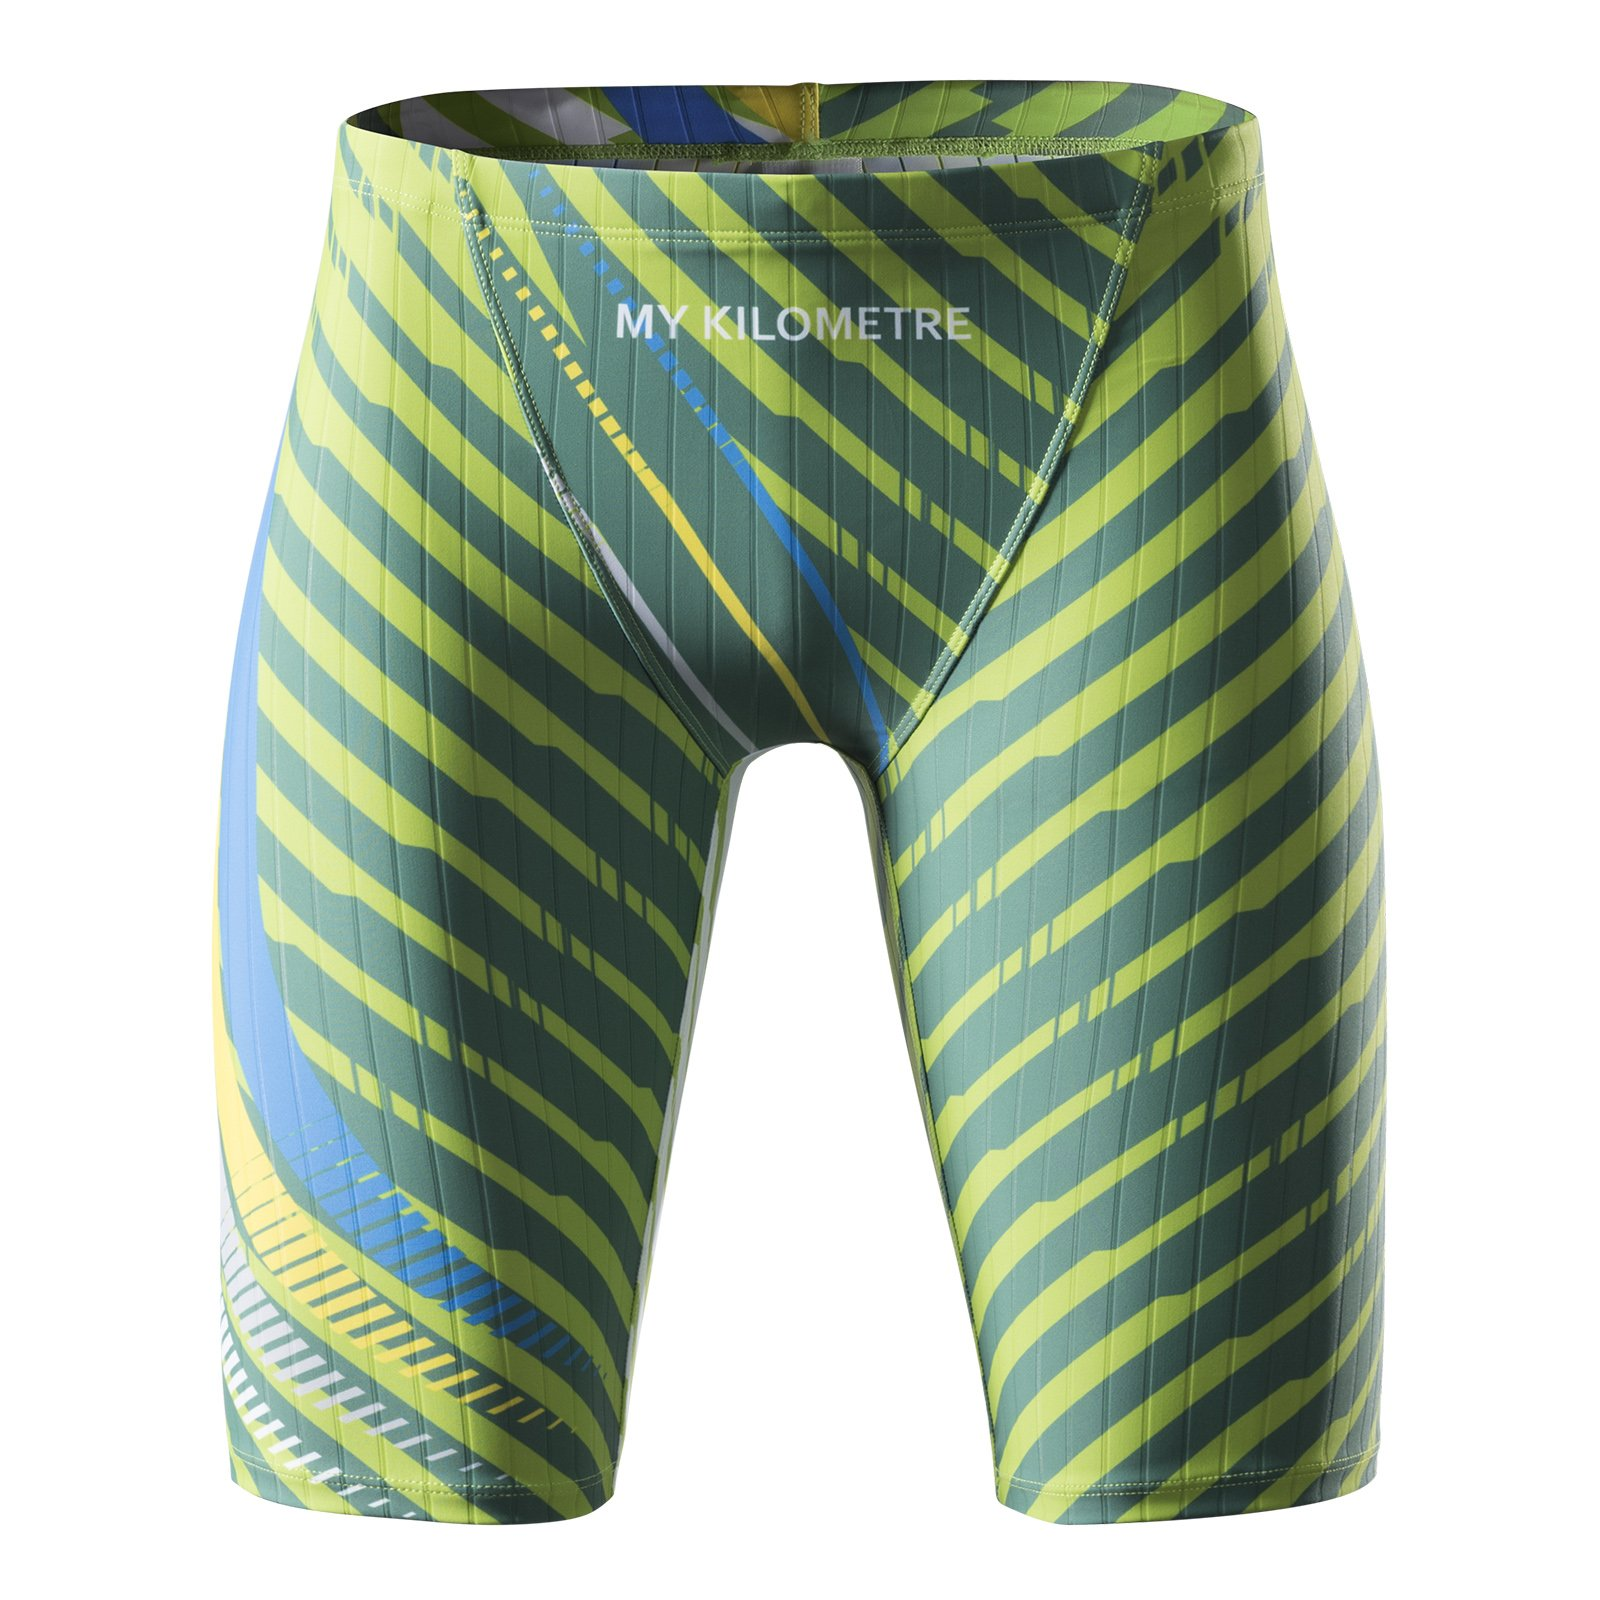 e21a04c195 MY KILOMETRE Jammer Swimsuit Mens Solid Swim Jammers Endurance Long Racing  Training Swimsuit product image